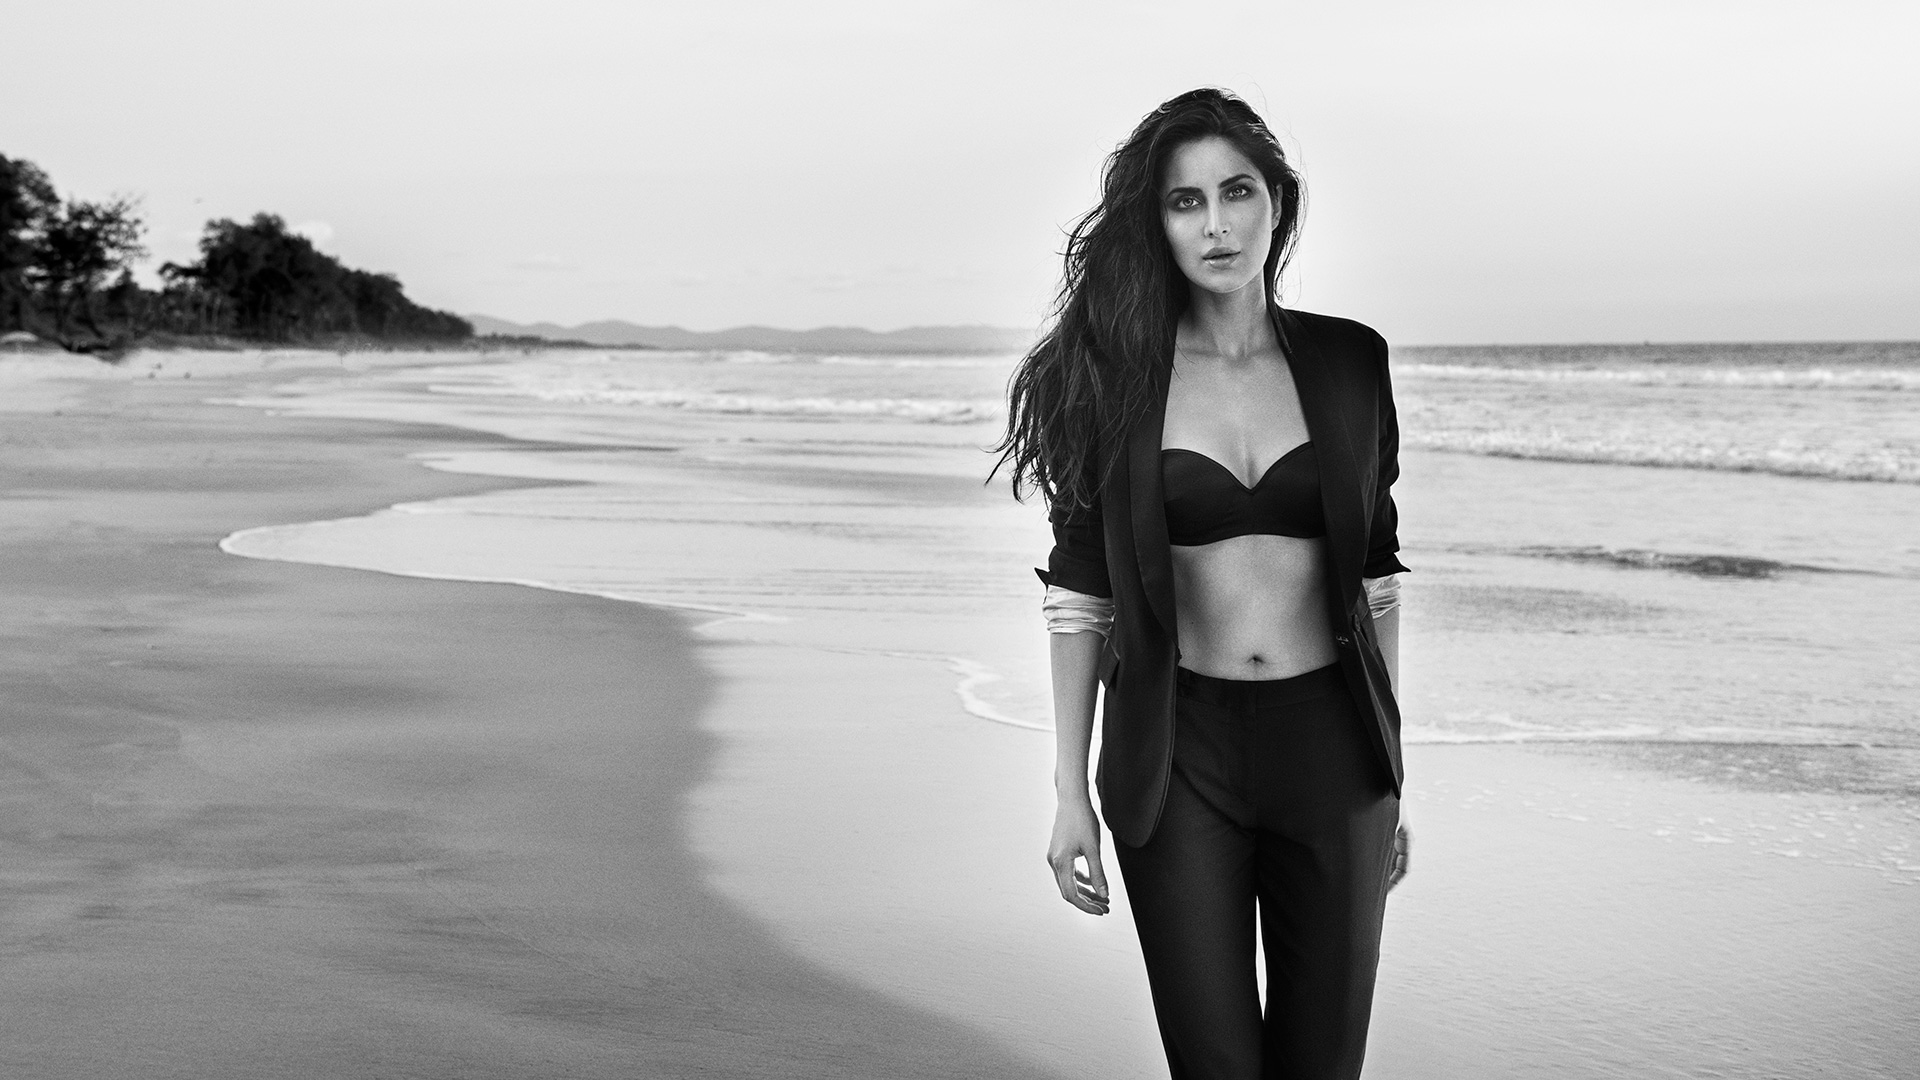 1920x1080 Katrina Kaif Monochrome Hd Laptop Full Hd 1080p Hd 4k